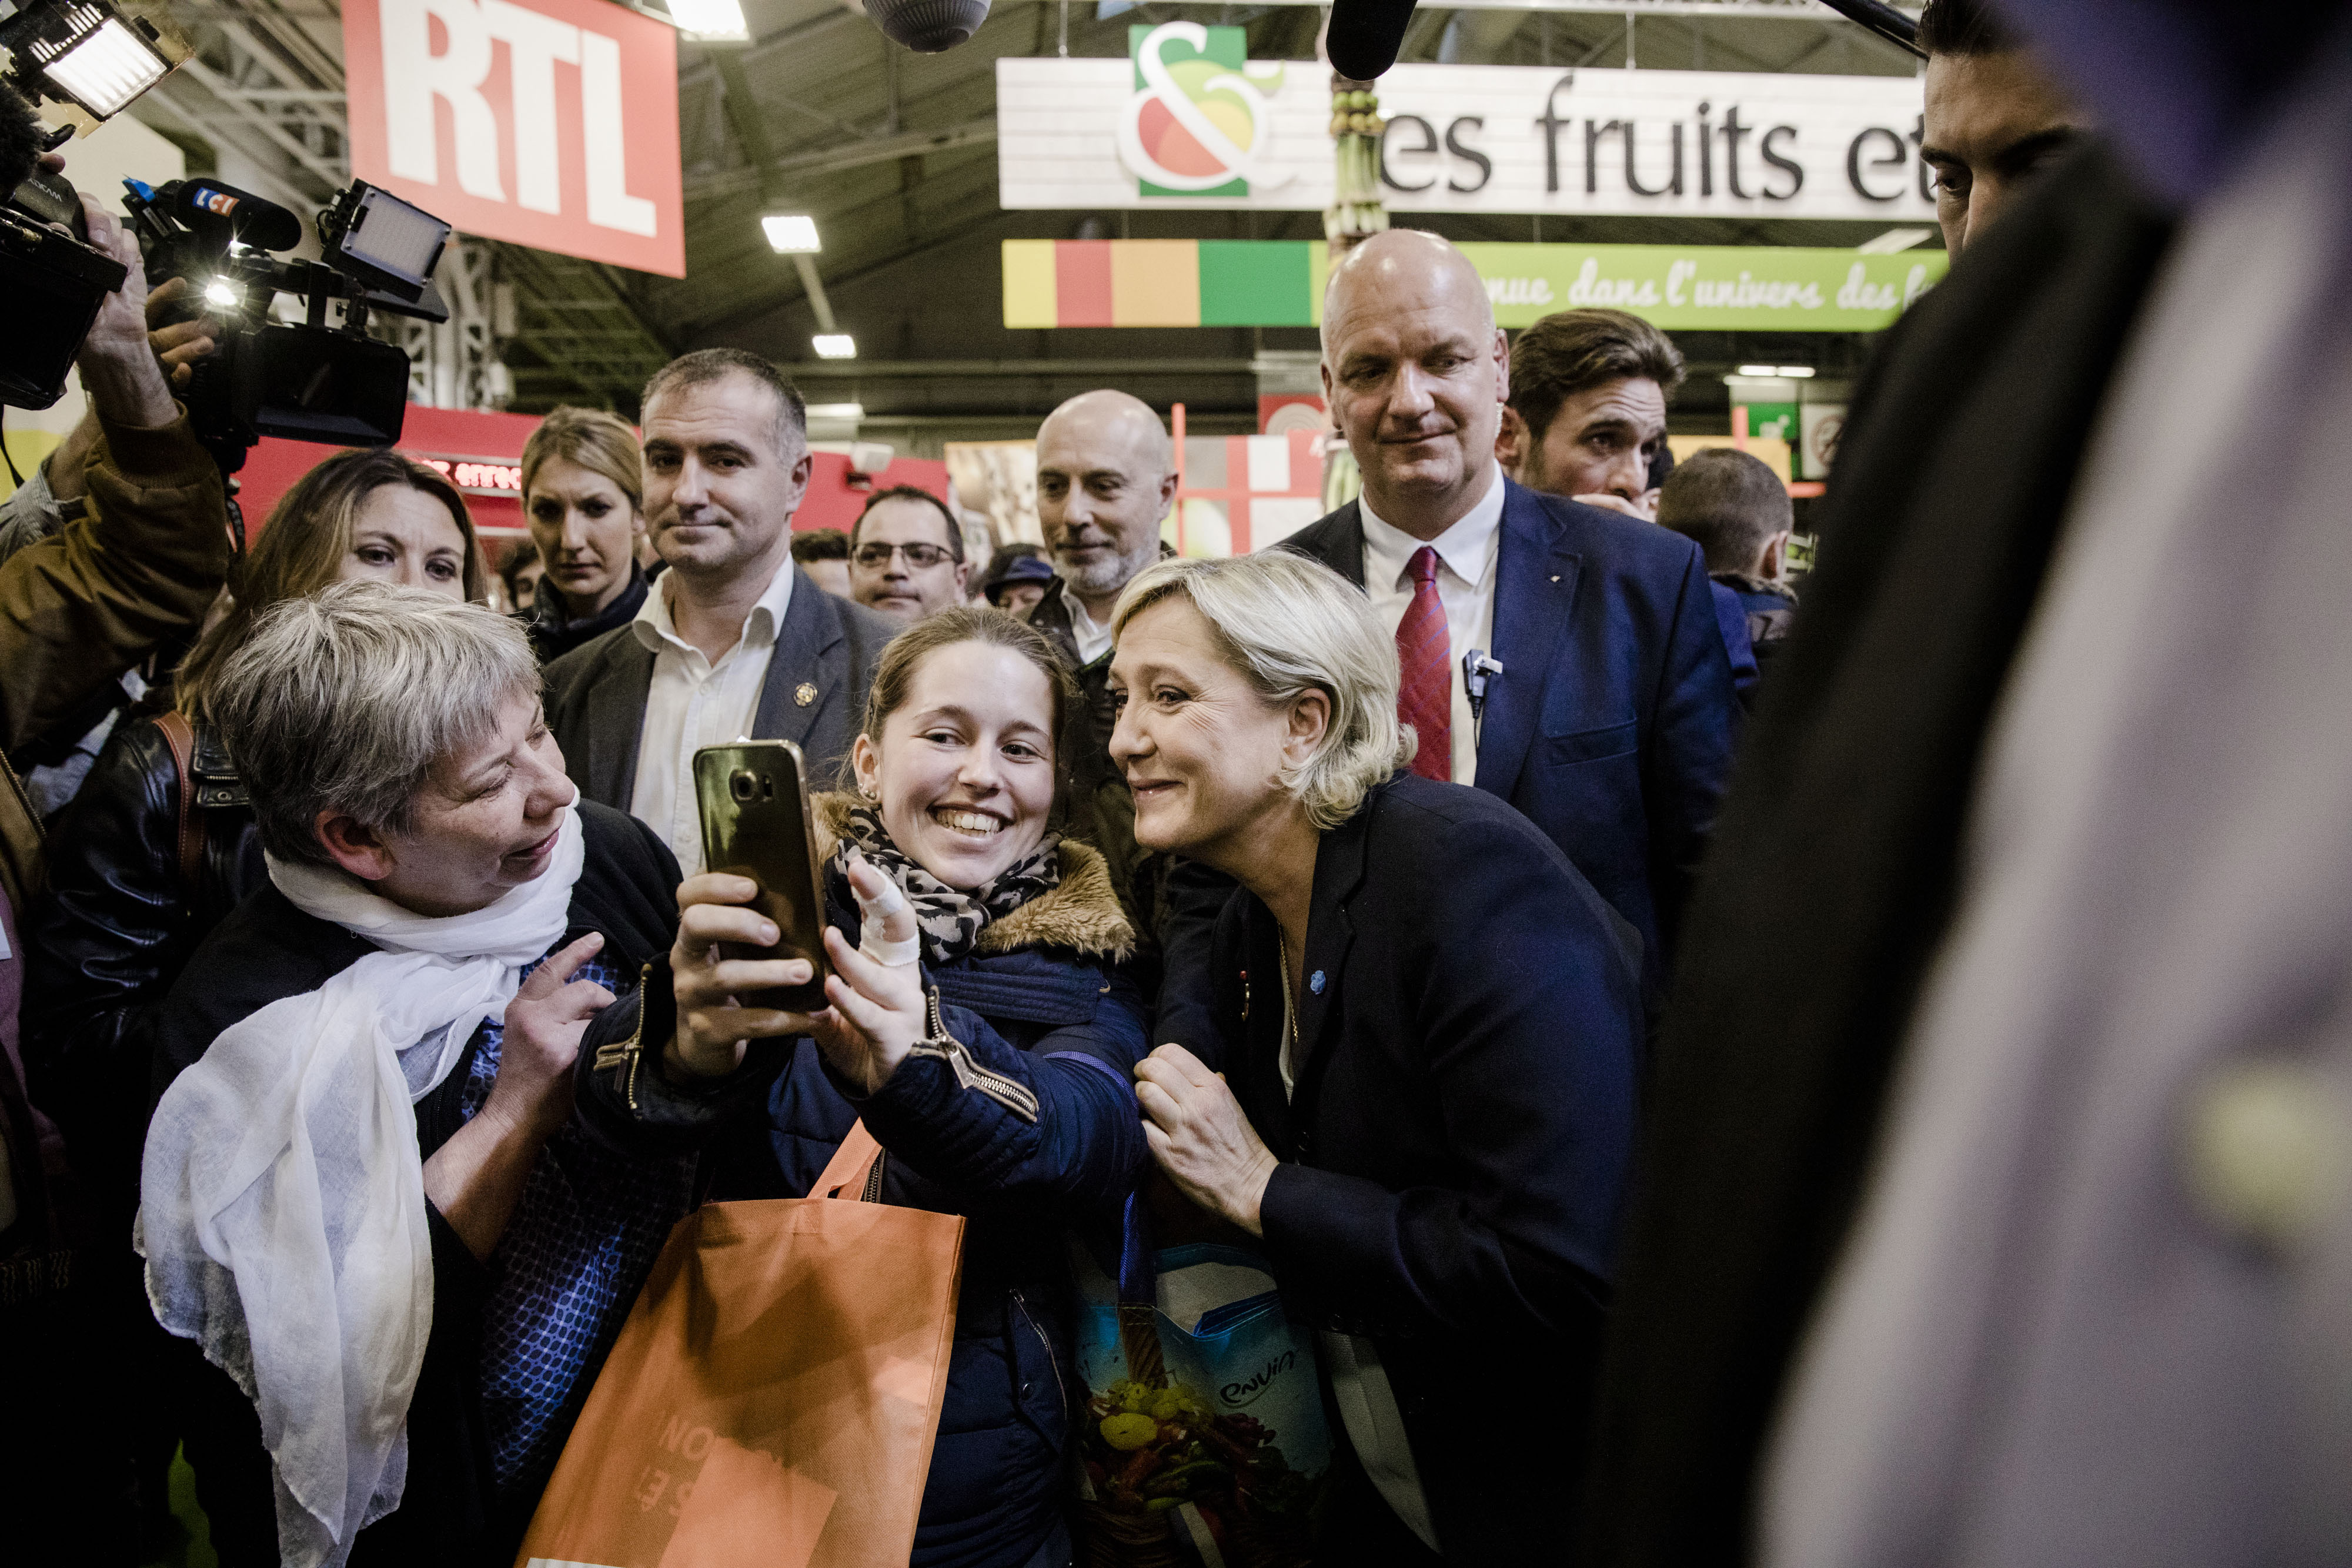 France's Presidential Candidate Marine Le Pen Visits International Agriculture Fair